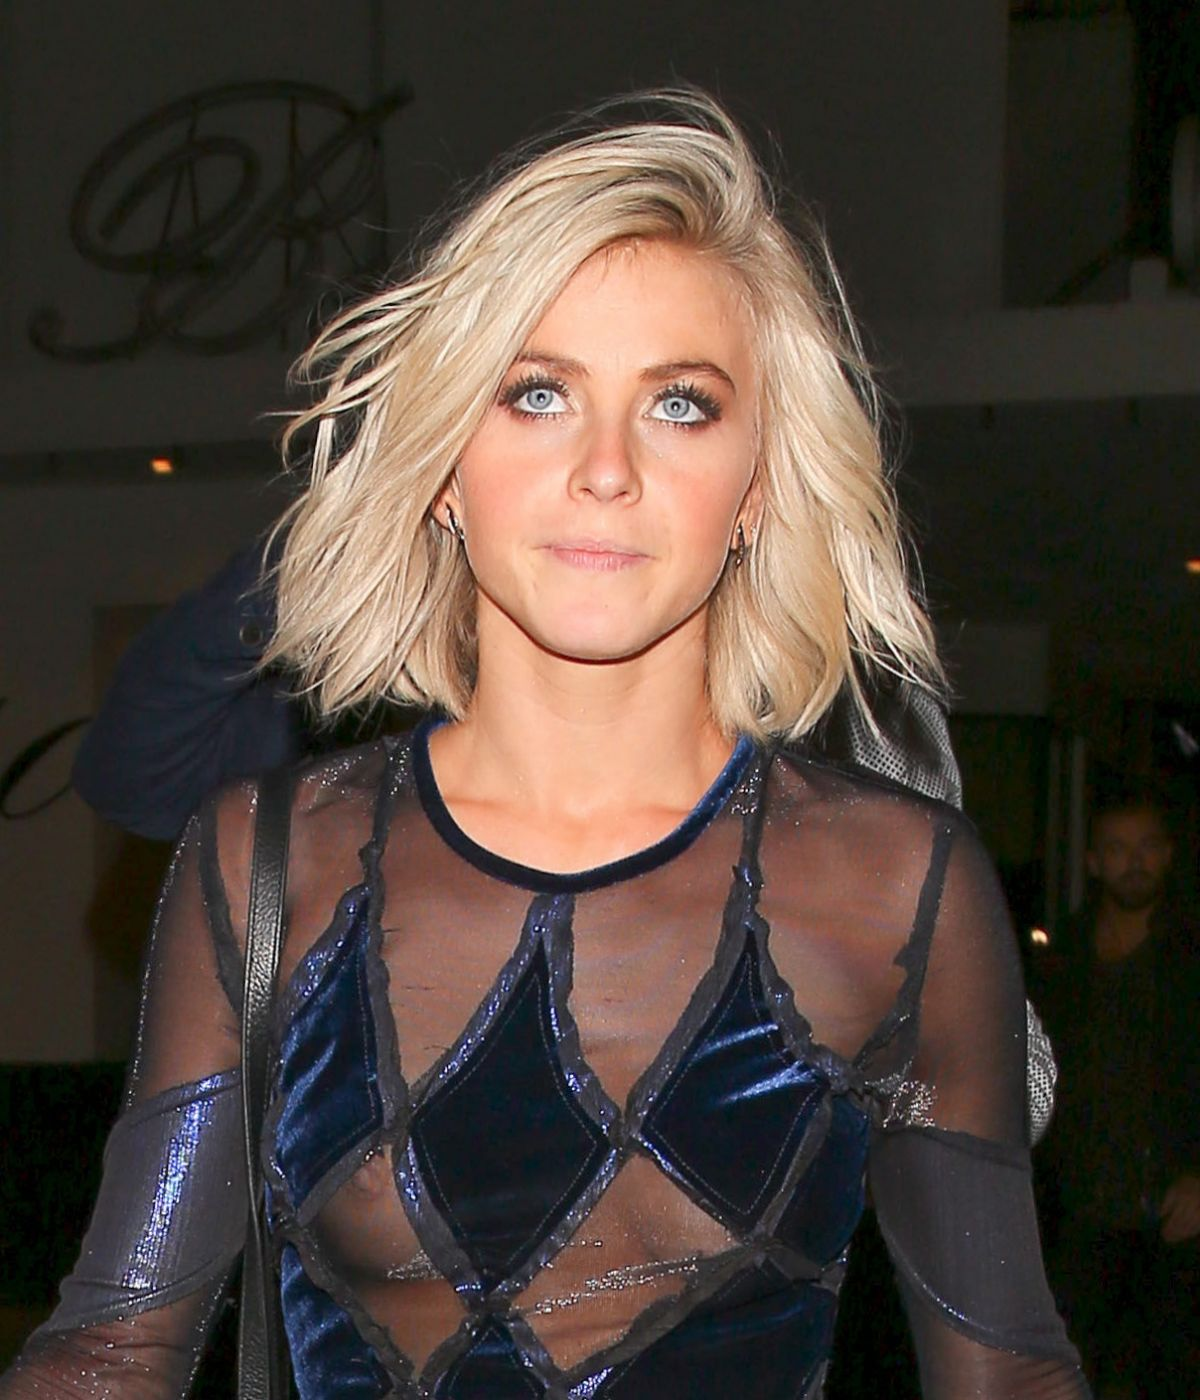 images Julianne hough braless